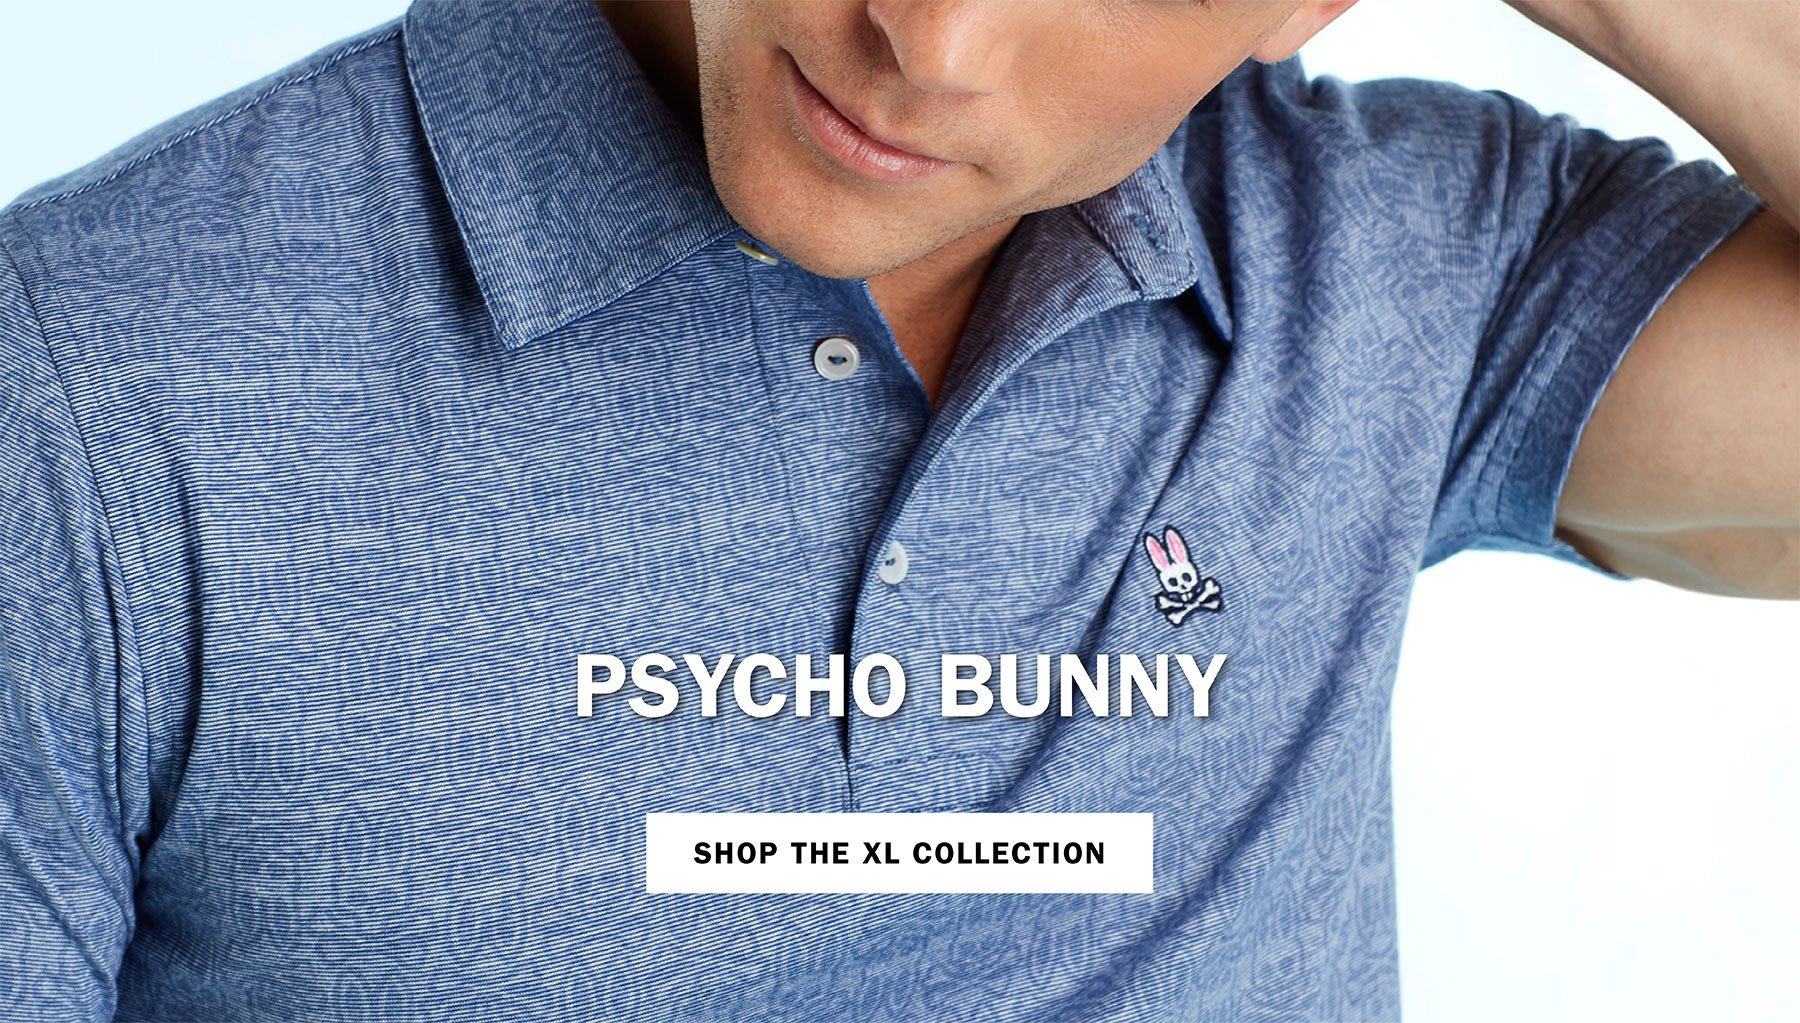 PSYCHO BUNNY | SHOP THE XL COLLECTION